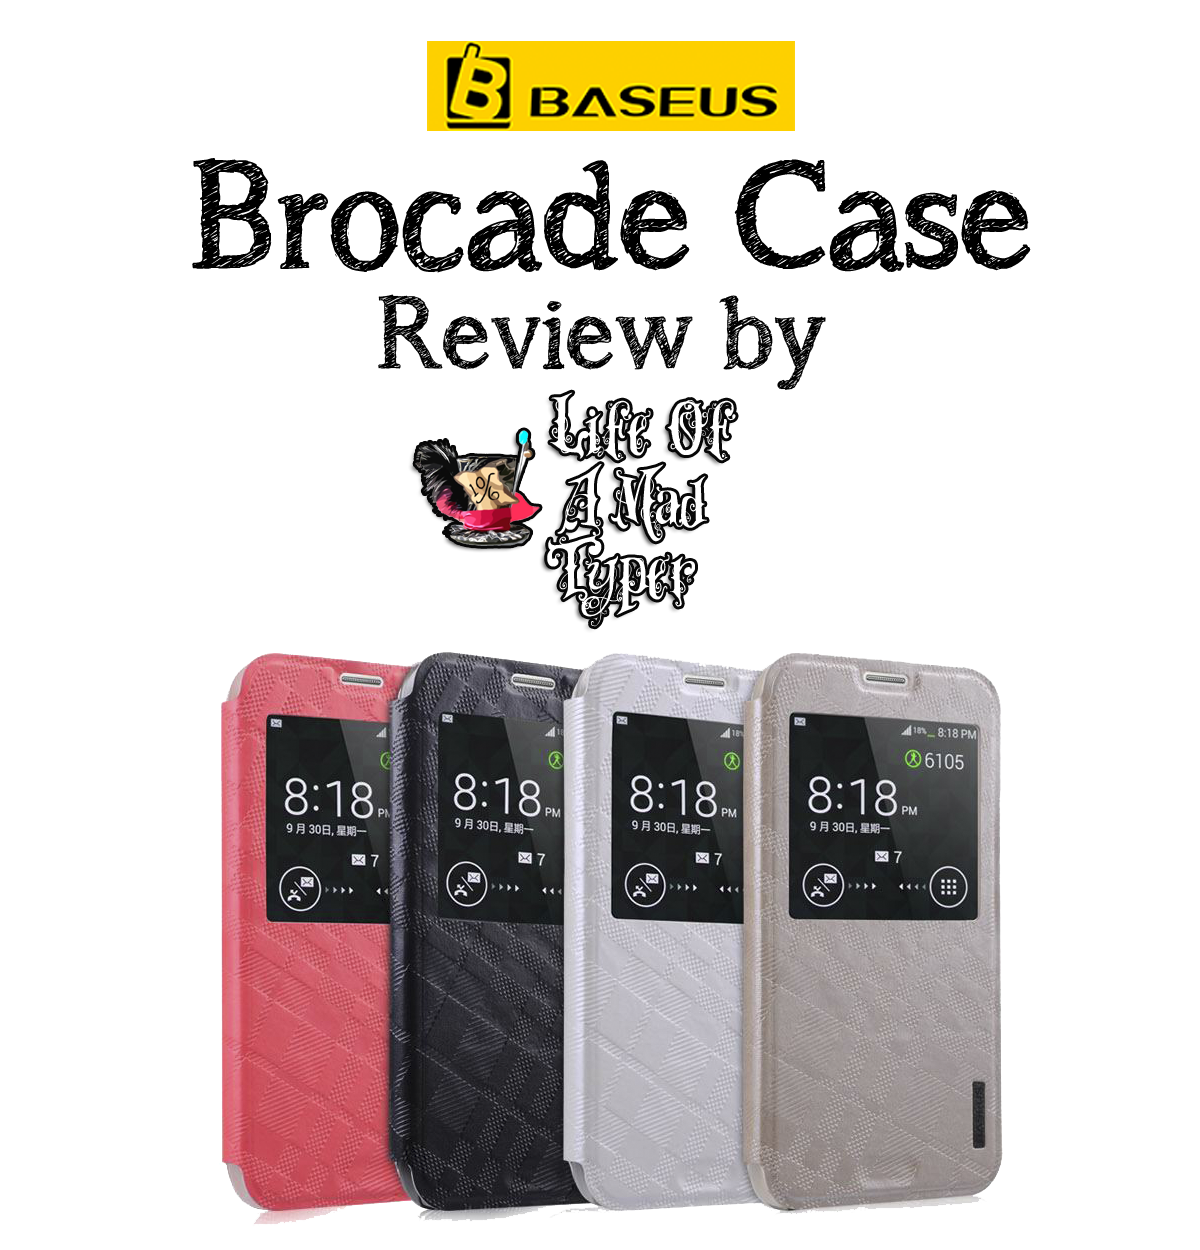 Brocade Case for Samsung Galaxy S5 by BASEUS